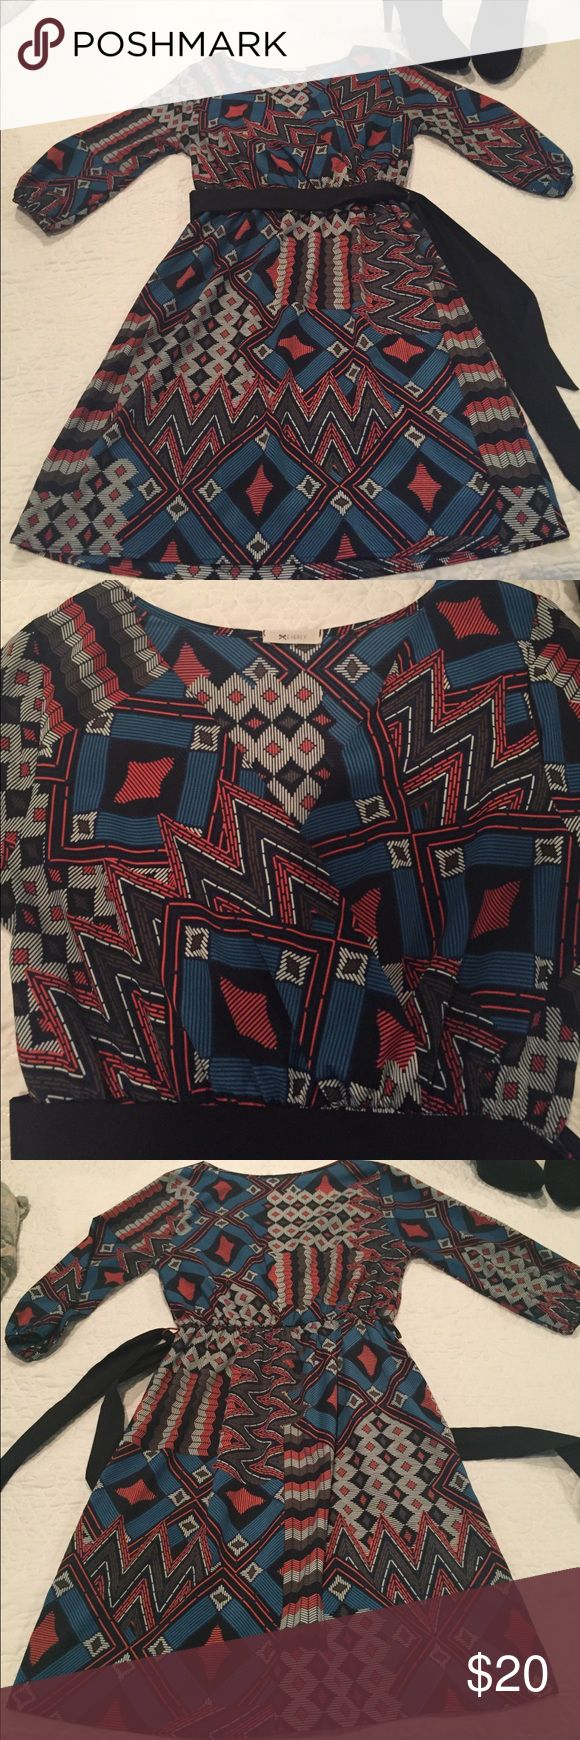 Beautiful everly dress 3/4 length sleeves sheer everly dress. Size medium worn once . Would fit a size 6, 8, or 10 . Stretch in the waistband. Blue, coral , and black colors in the print with a black sash to tie around waist . Everly Dresses